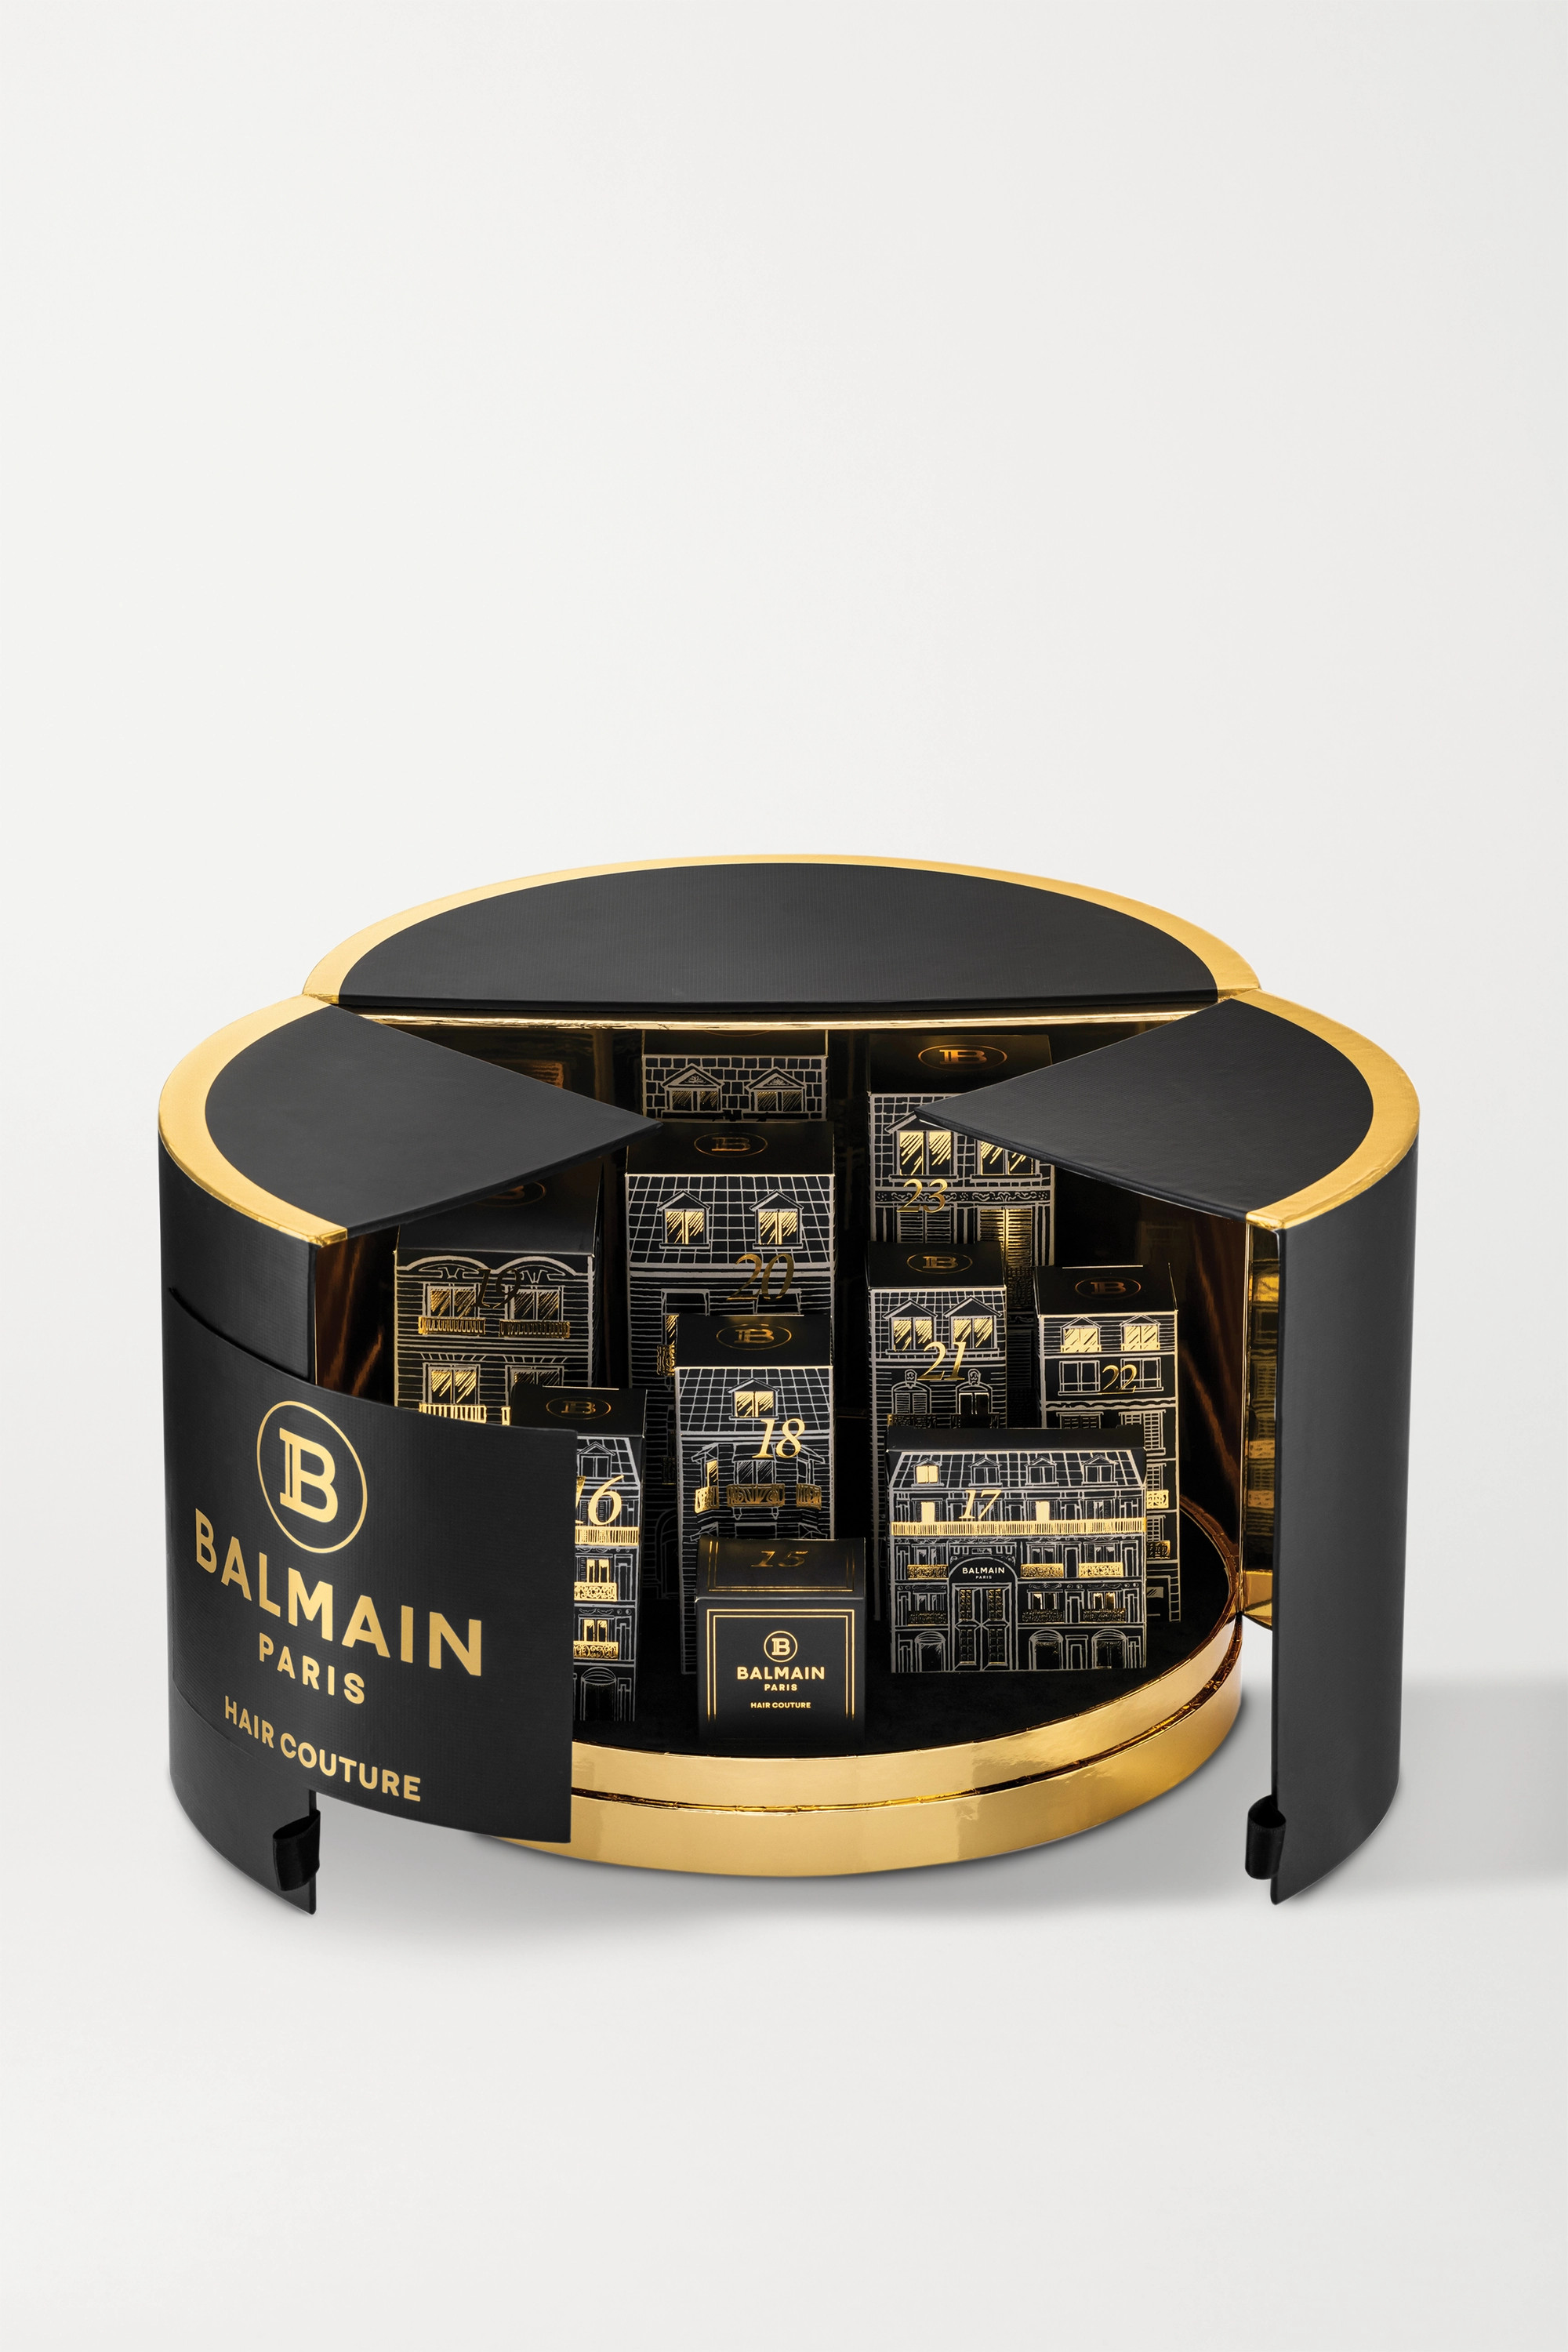 Balmain Paris Hair Couture The City of Lights Gift Calendar – Geschenkkalender mit Haarpflegeprodukten